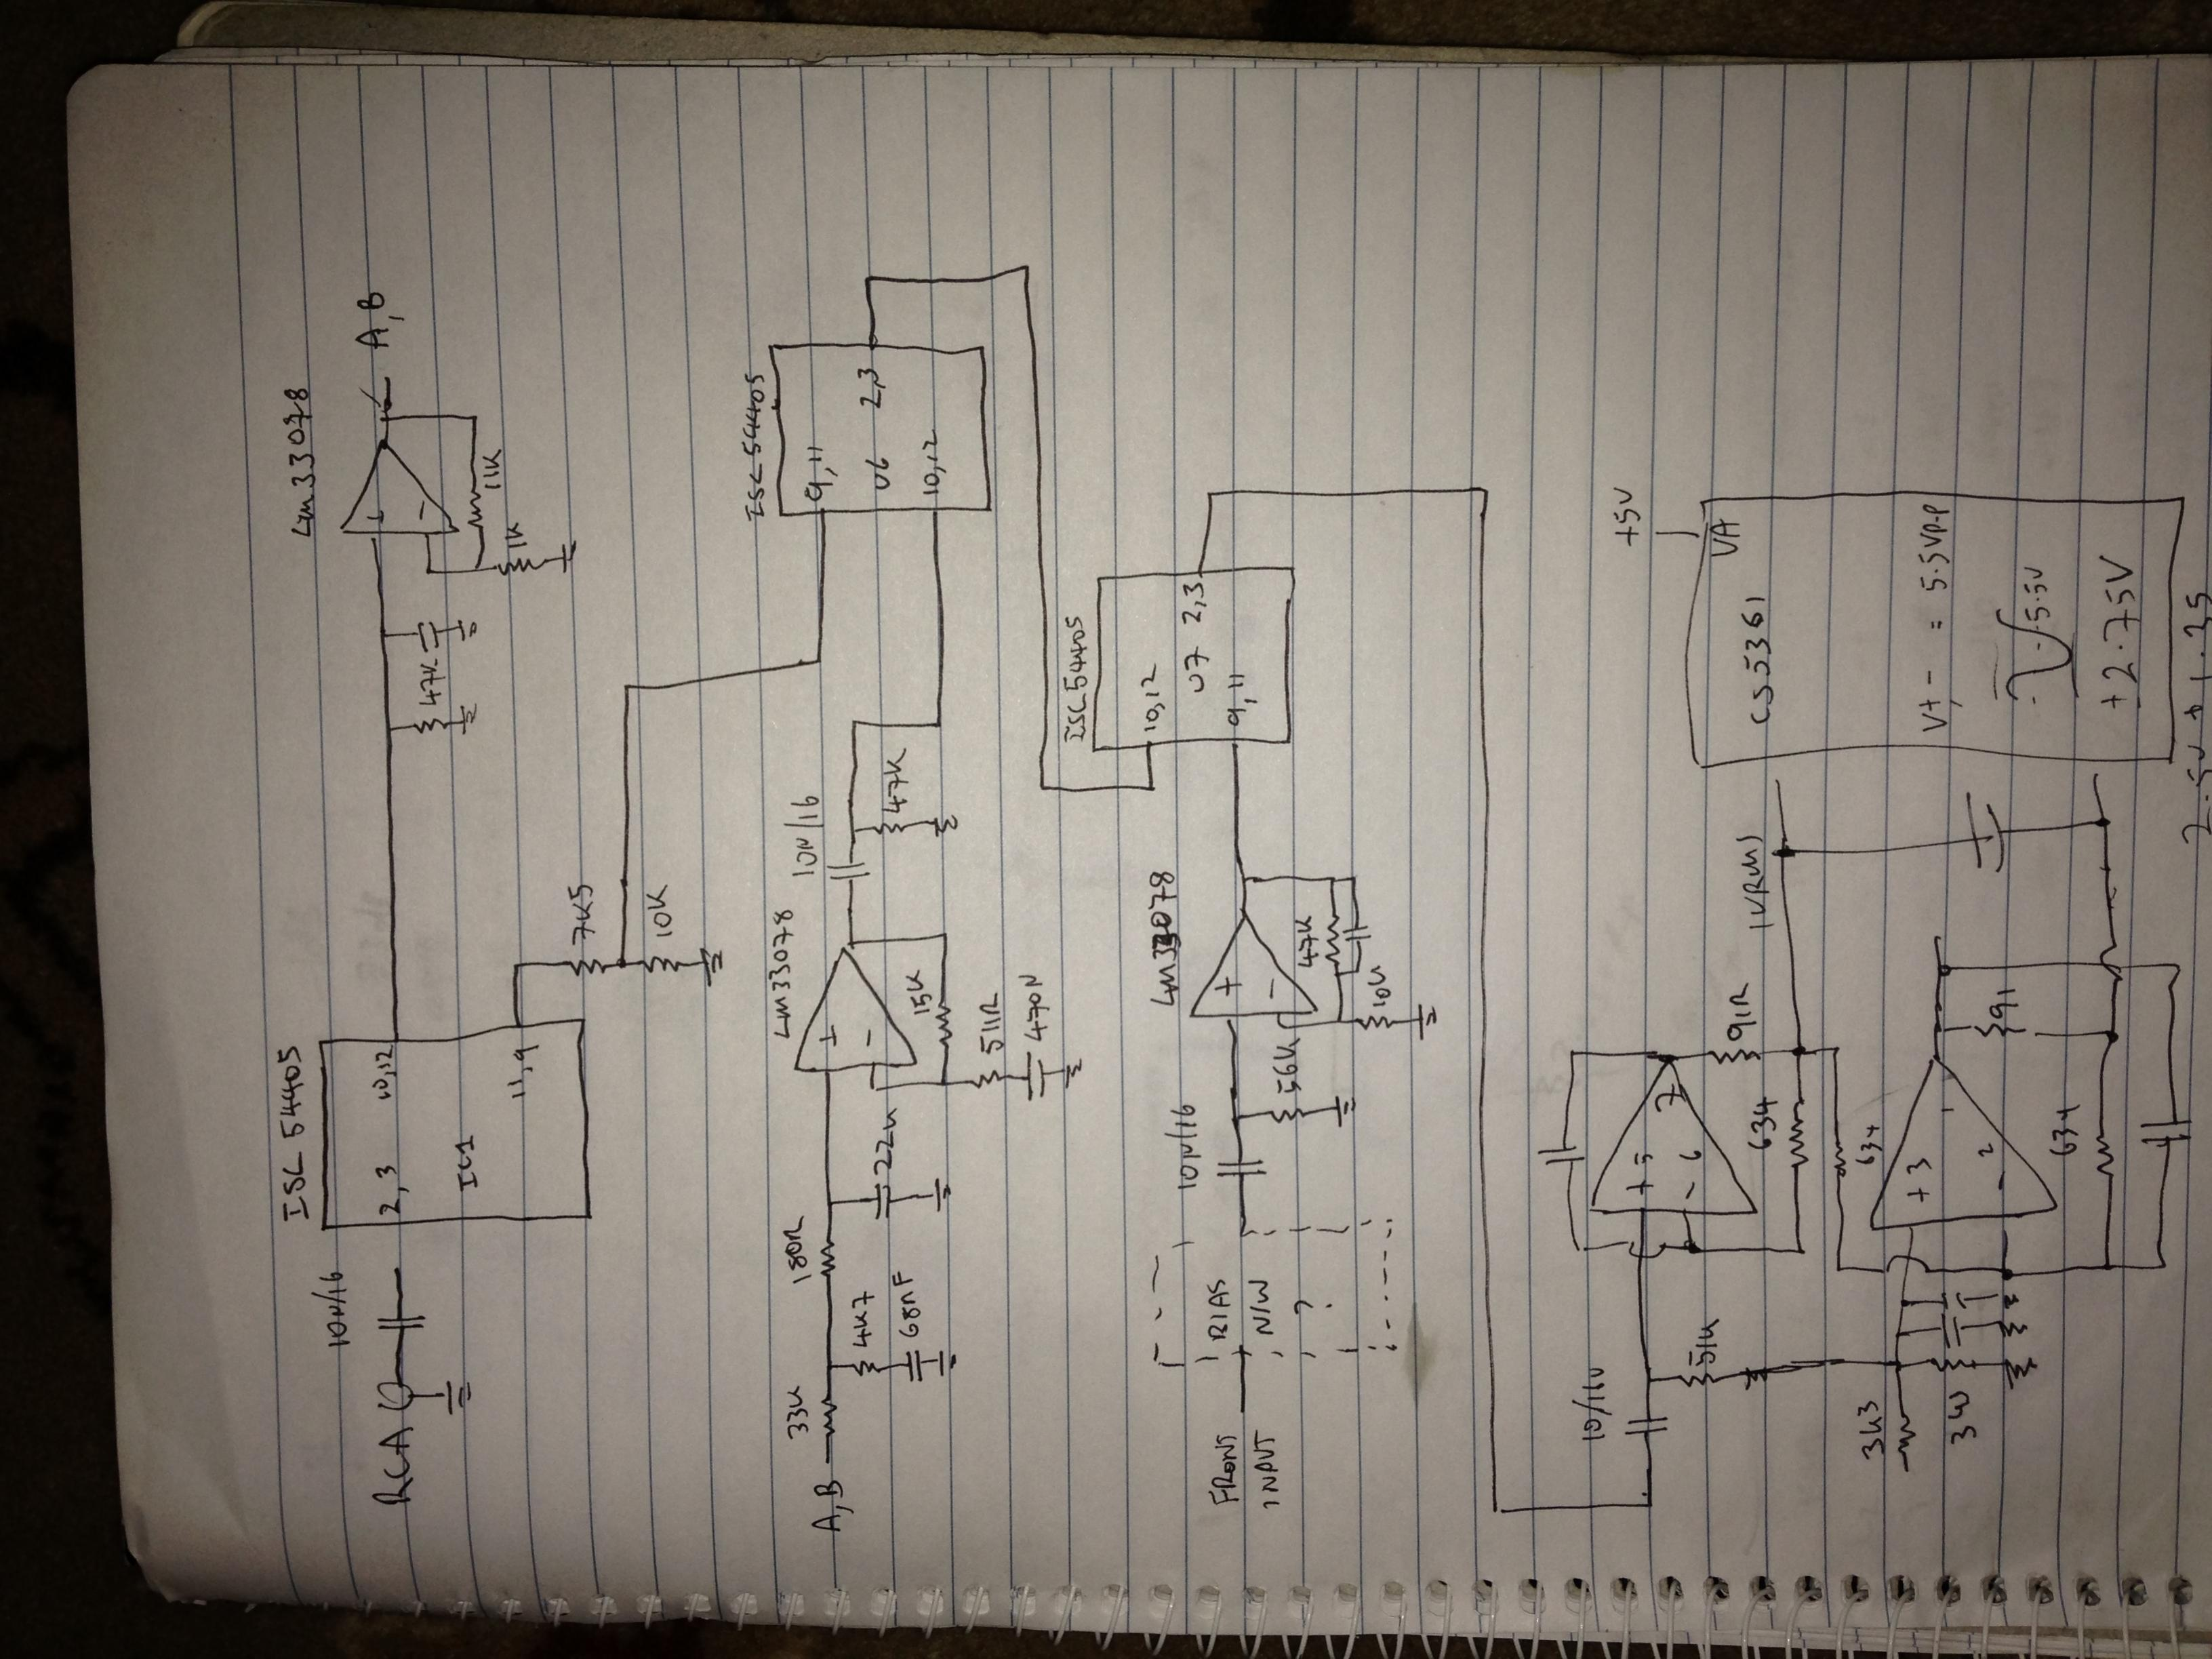 This Is The Power Supply Schematic Click On It For A Larger Version